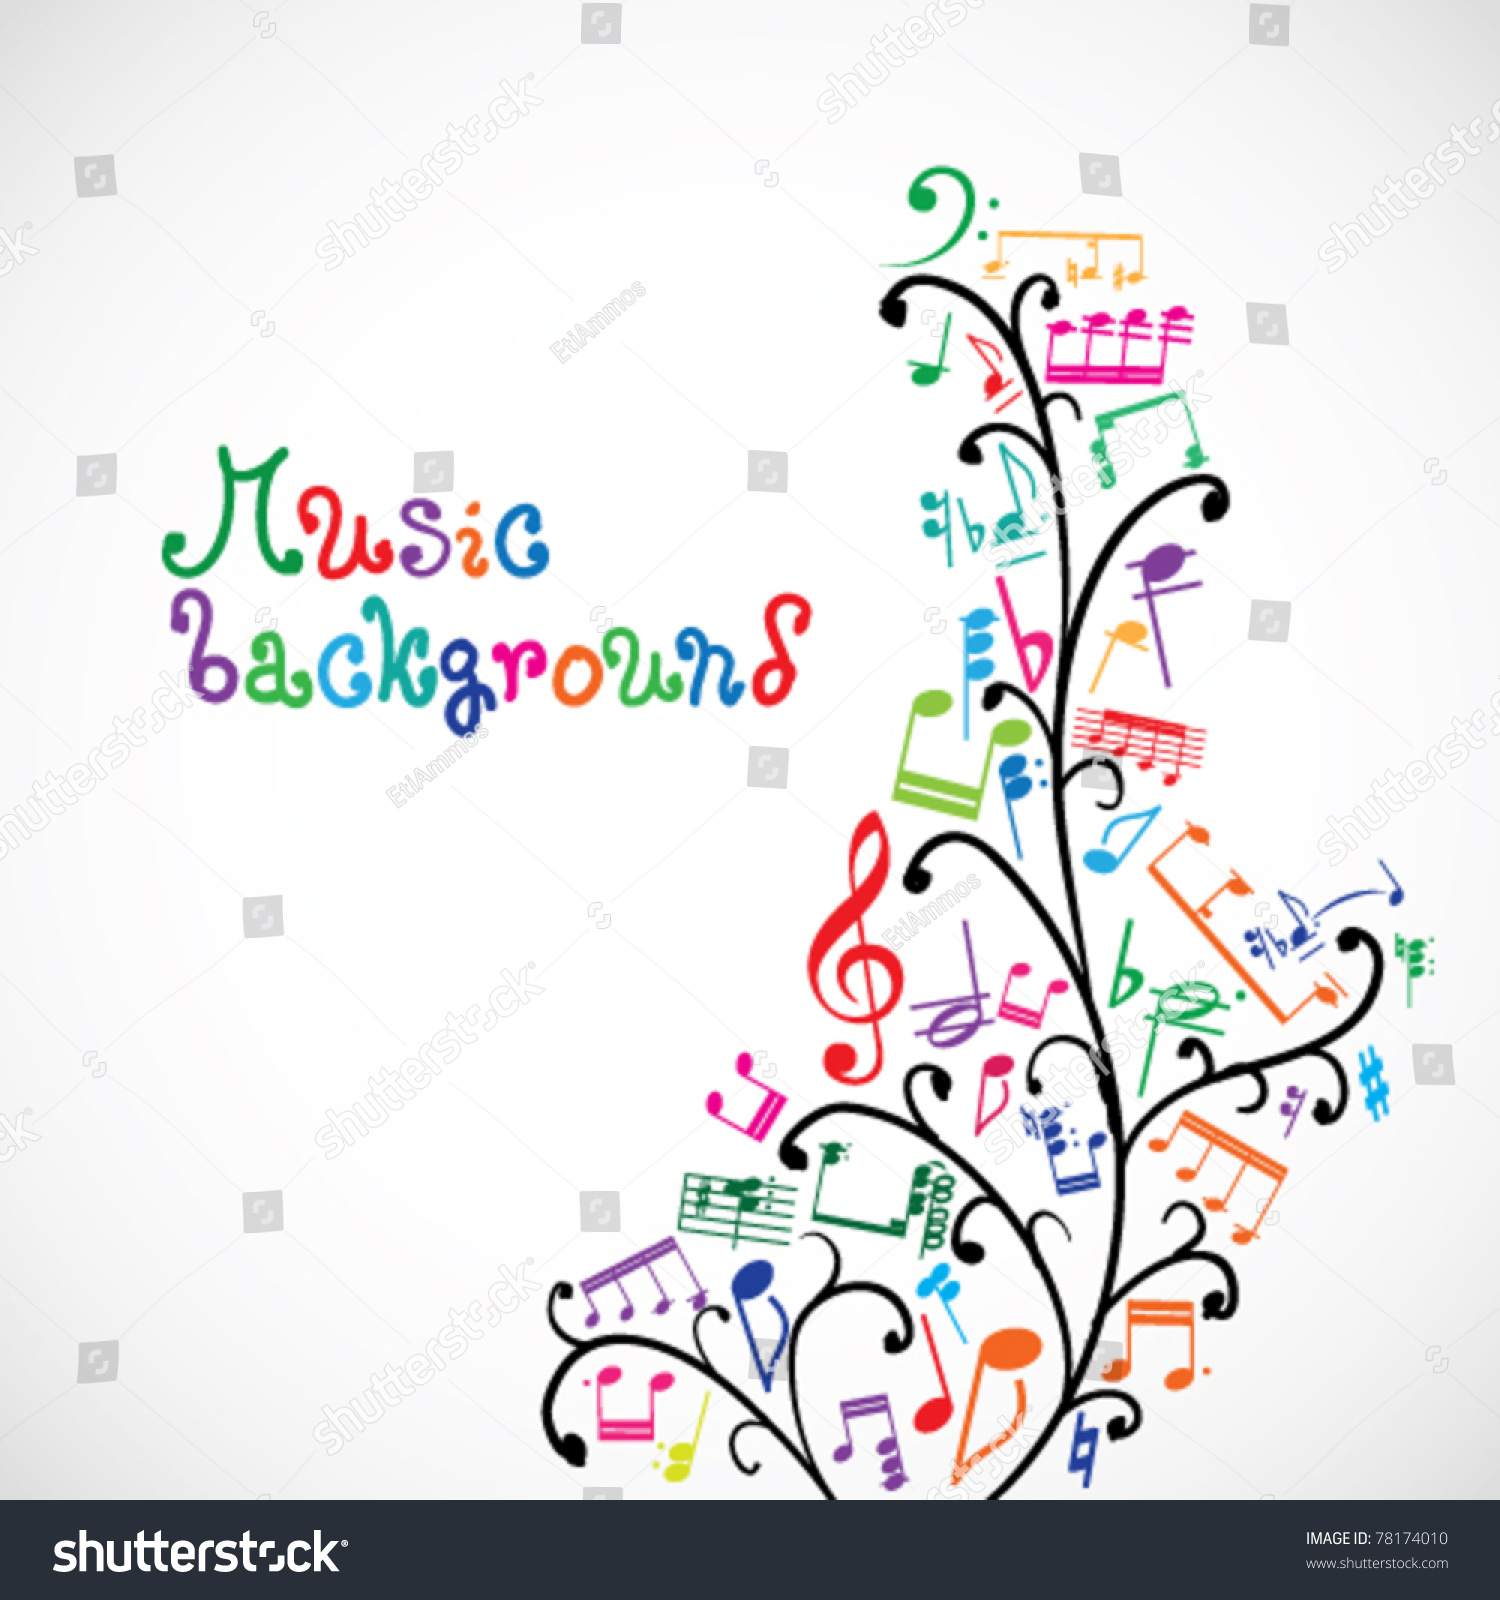 music notes backgrounds floral - photo #15